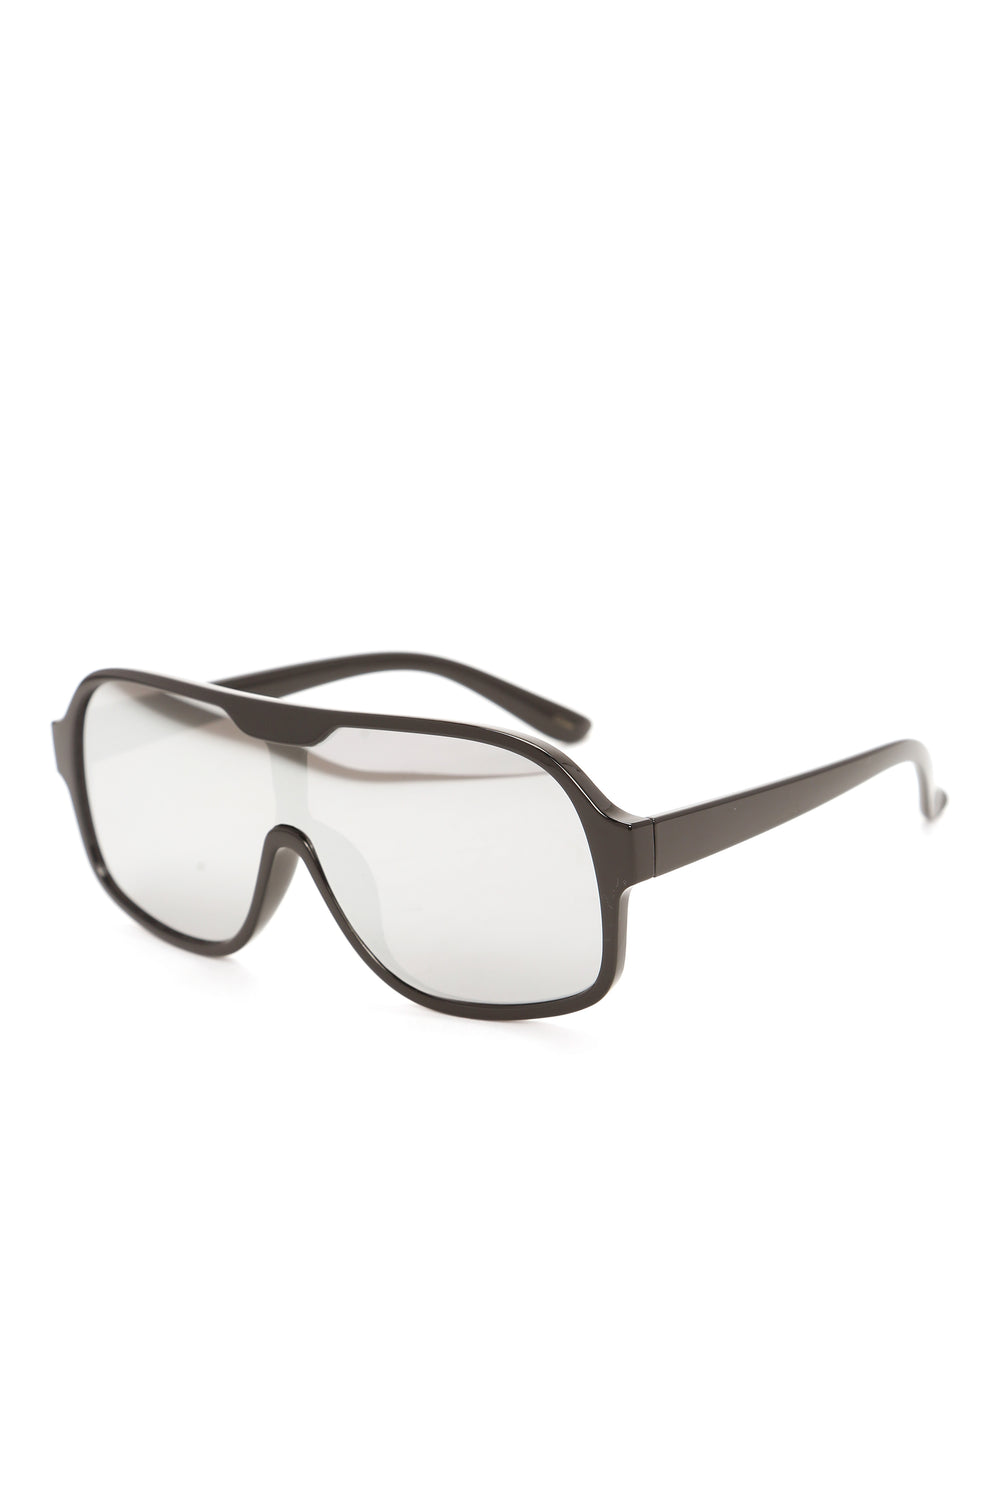 Sway This Way Sunglasses - Silver